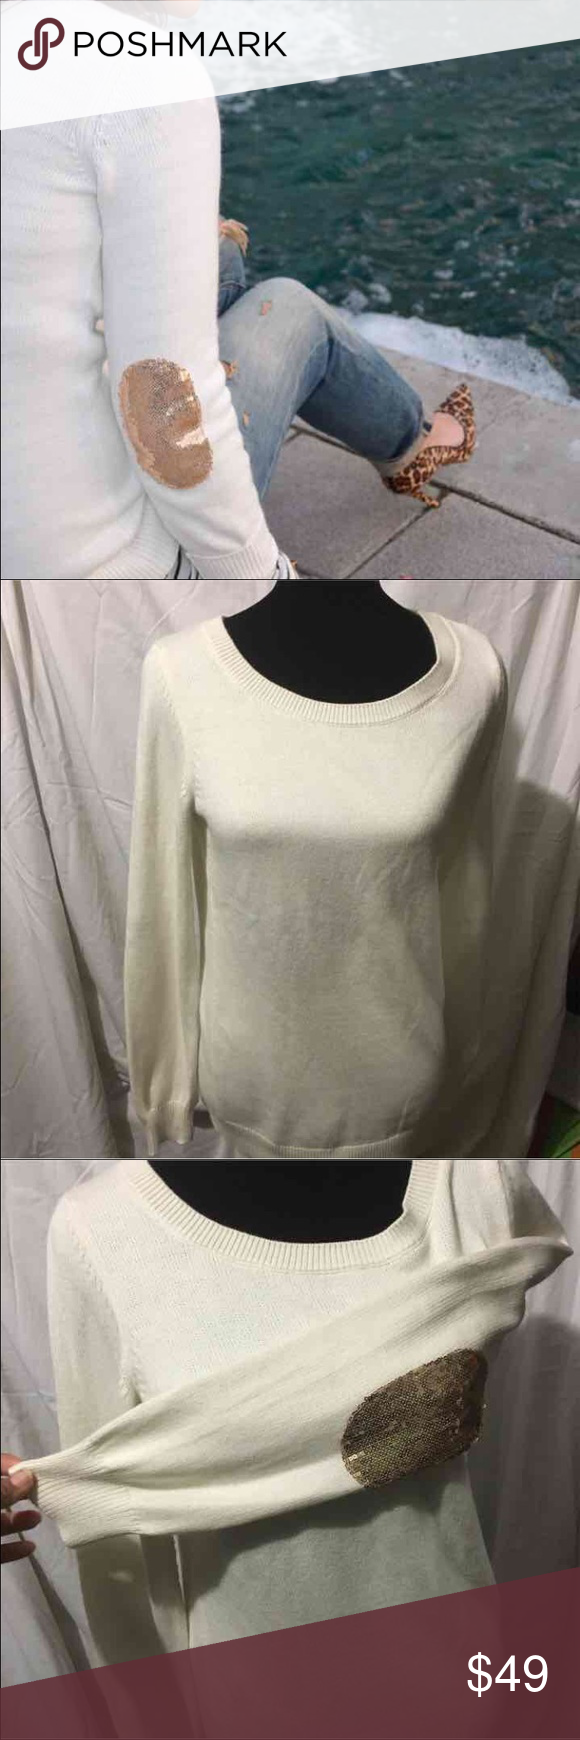 """❗️final price❗️Banana republic sweater Size:m... Regular price 89.50... New with tags ... 70% cotton, 20%nylon, 10% angora rabbit hair exclusively for decoration .. ‼️I ignore """"what's your lowest?"""" And offers that are more than 20% off ‼️ Banana Republic Sweaters Crew & Scoop Necks"""